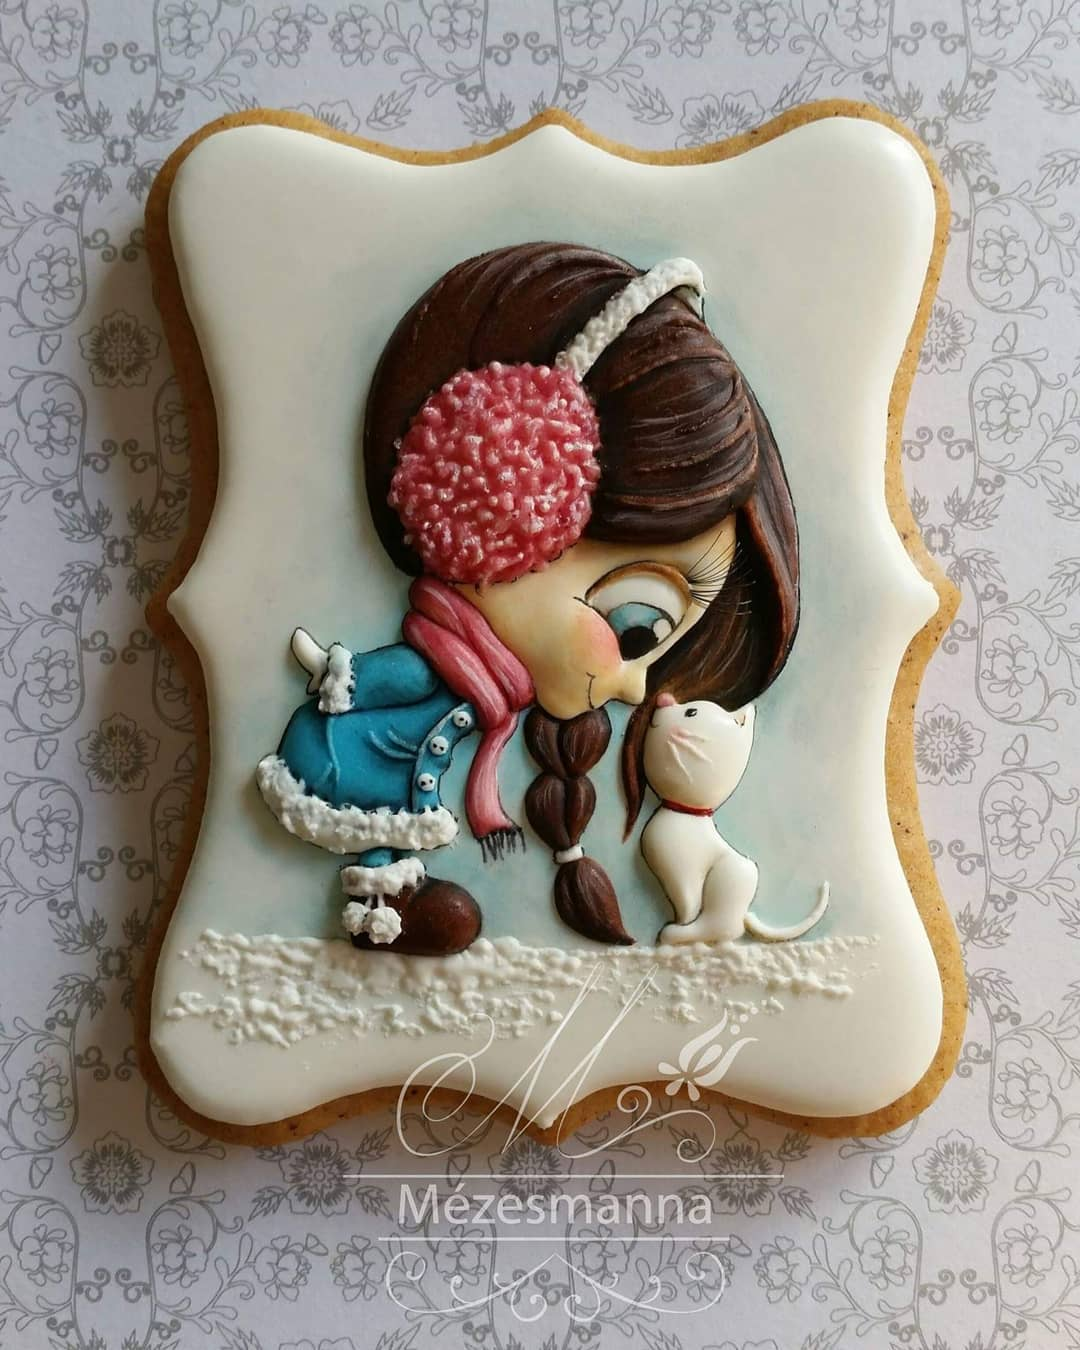 Embroidery-Inspired Cookies Of Hungarian Chef Are Fit To Be Framed, Not Eaten 1